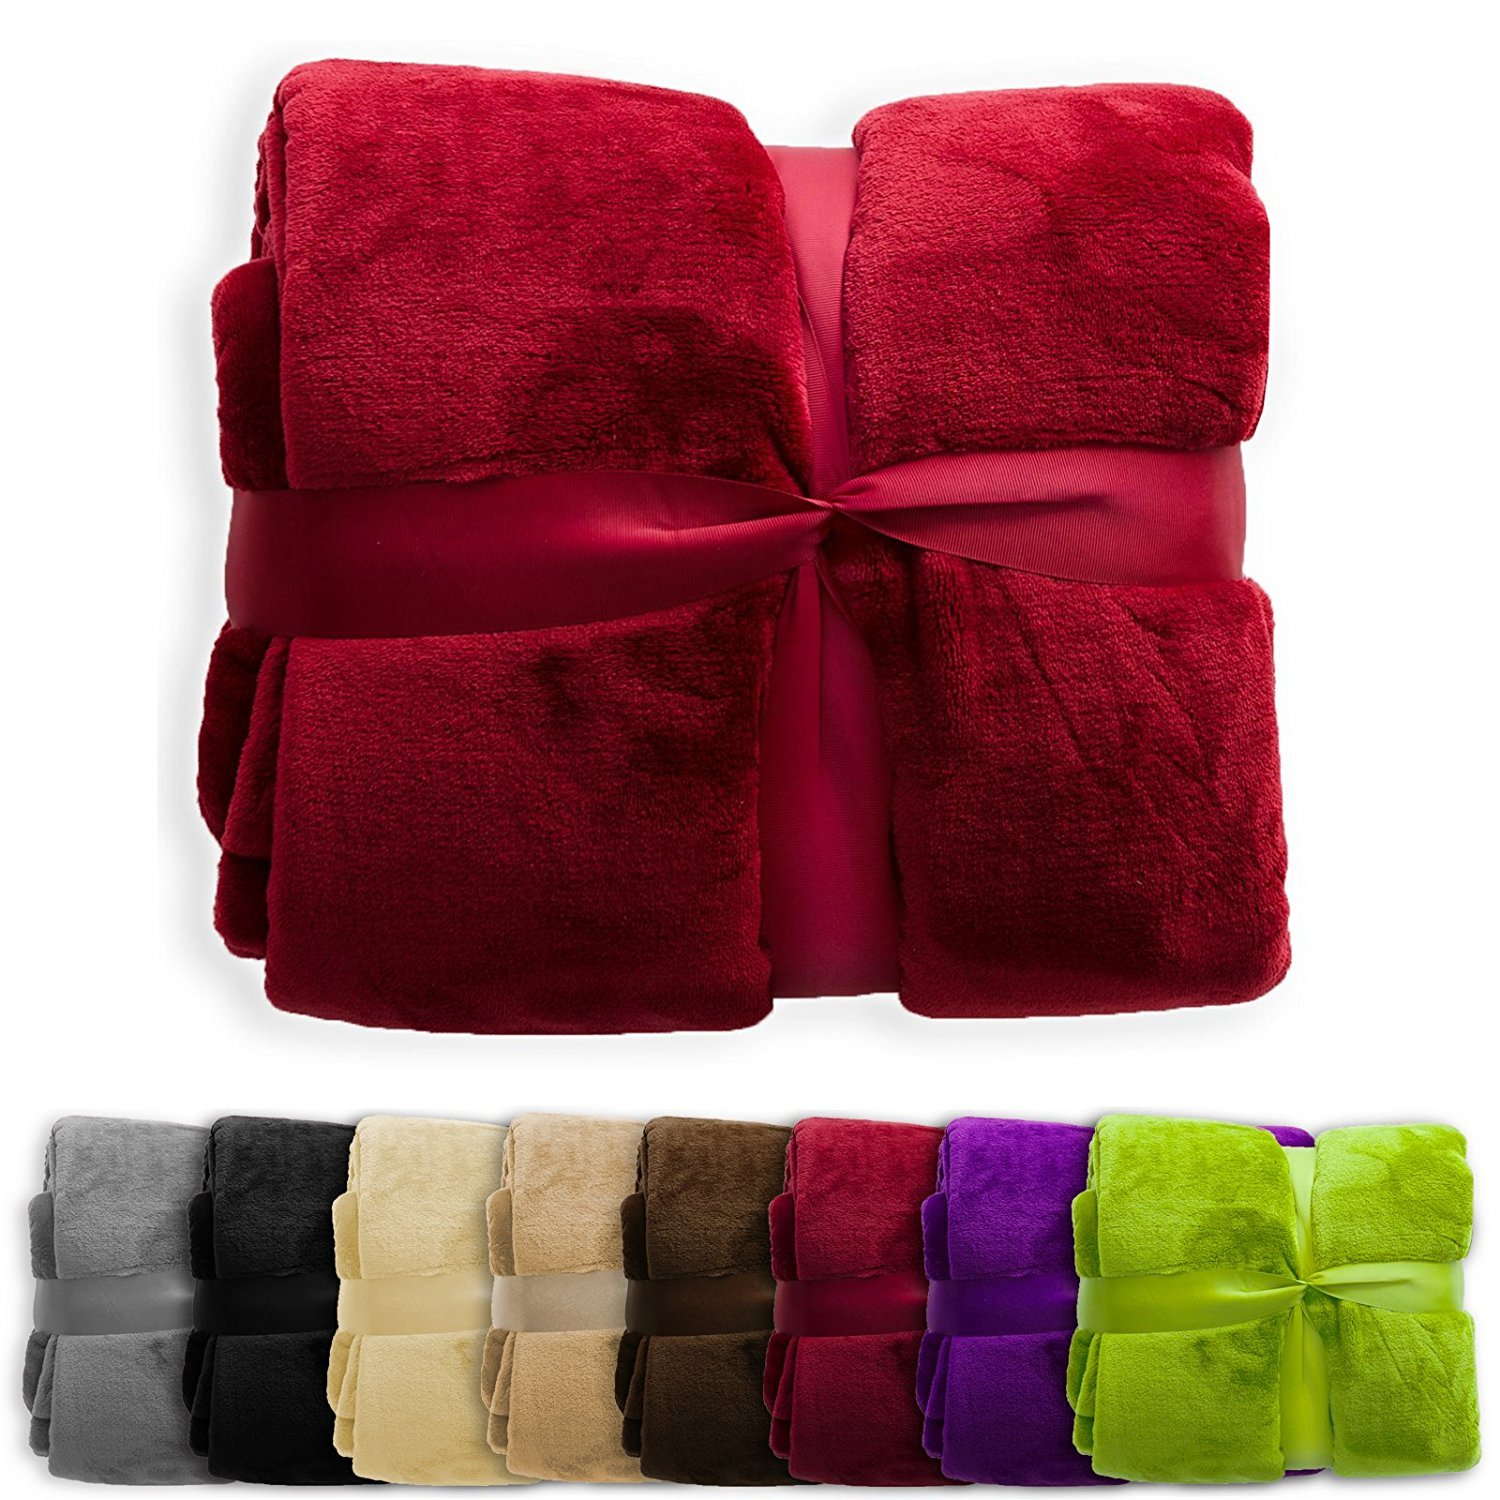 casa pura Fleece Throw Blanket | Plush Blanket Throw for Couch or Queen Size Bed | Super Soft & Cozy Fur Blankets | Various Sizes and Colors | Burgundy - 86'' x 94''